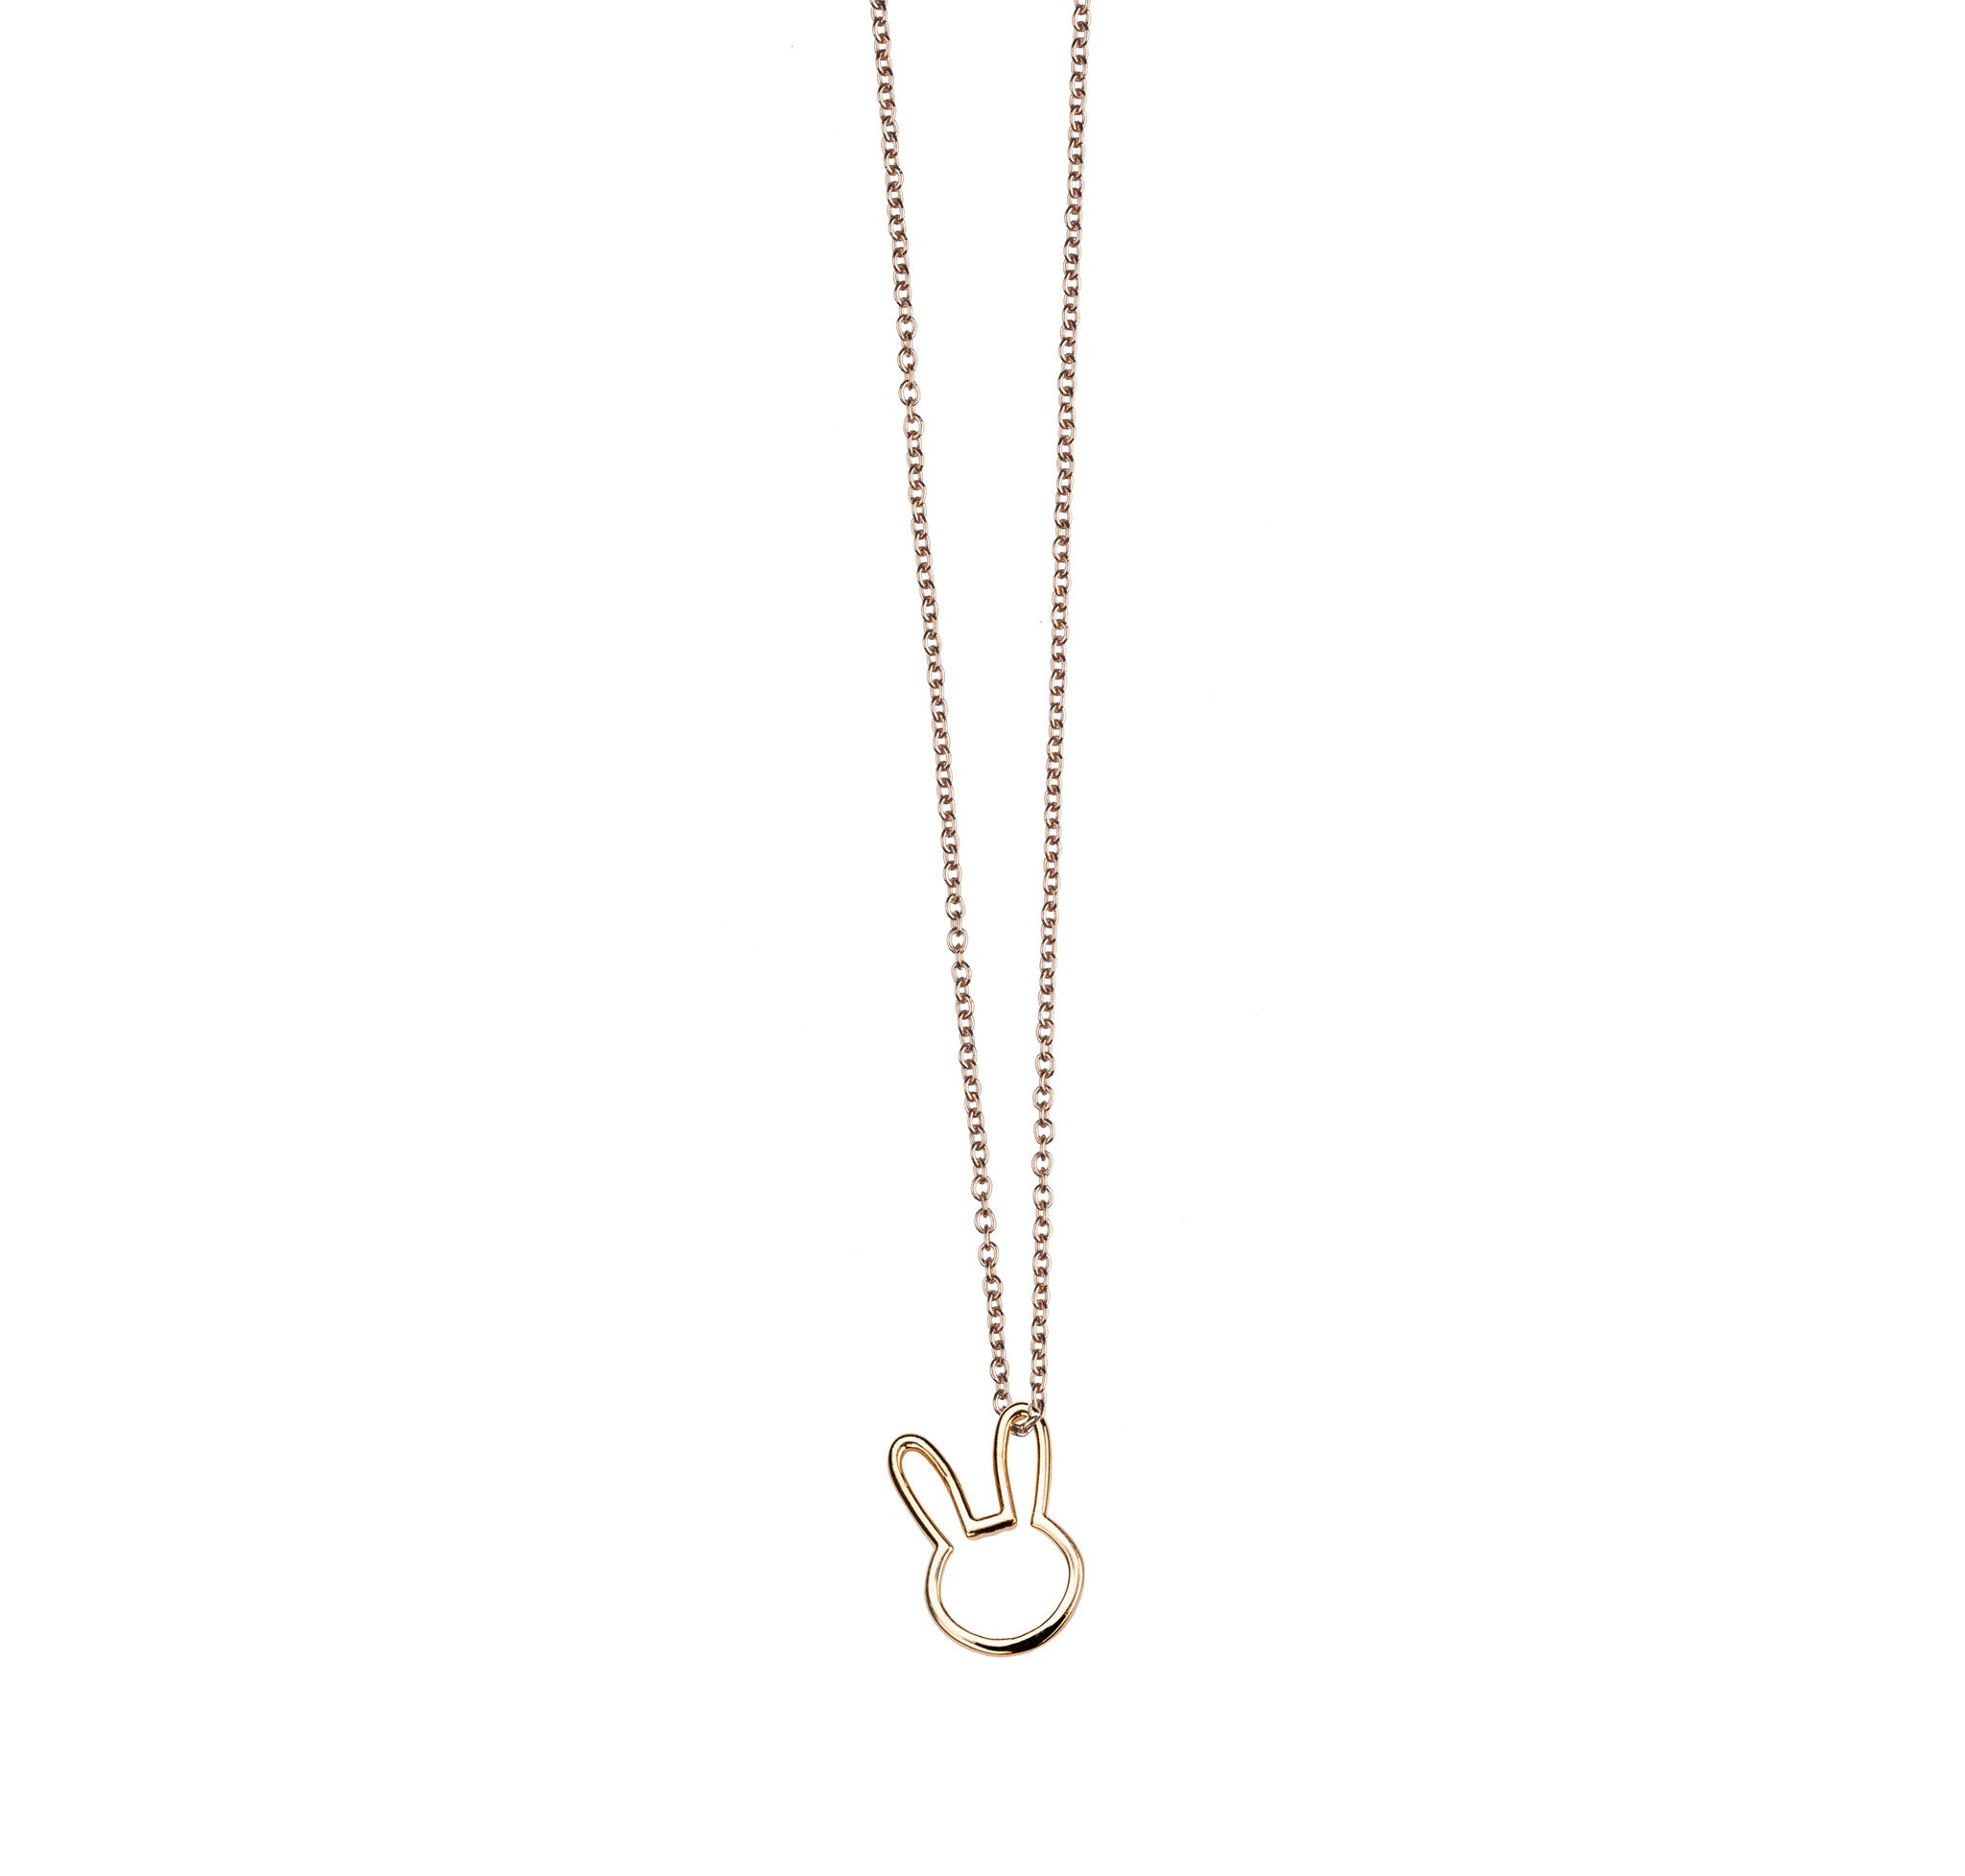 chain loren havana collections stewart necklace necklaces products mens petite